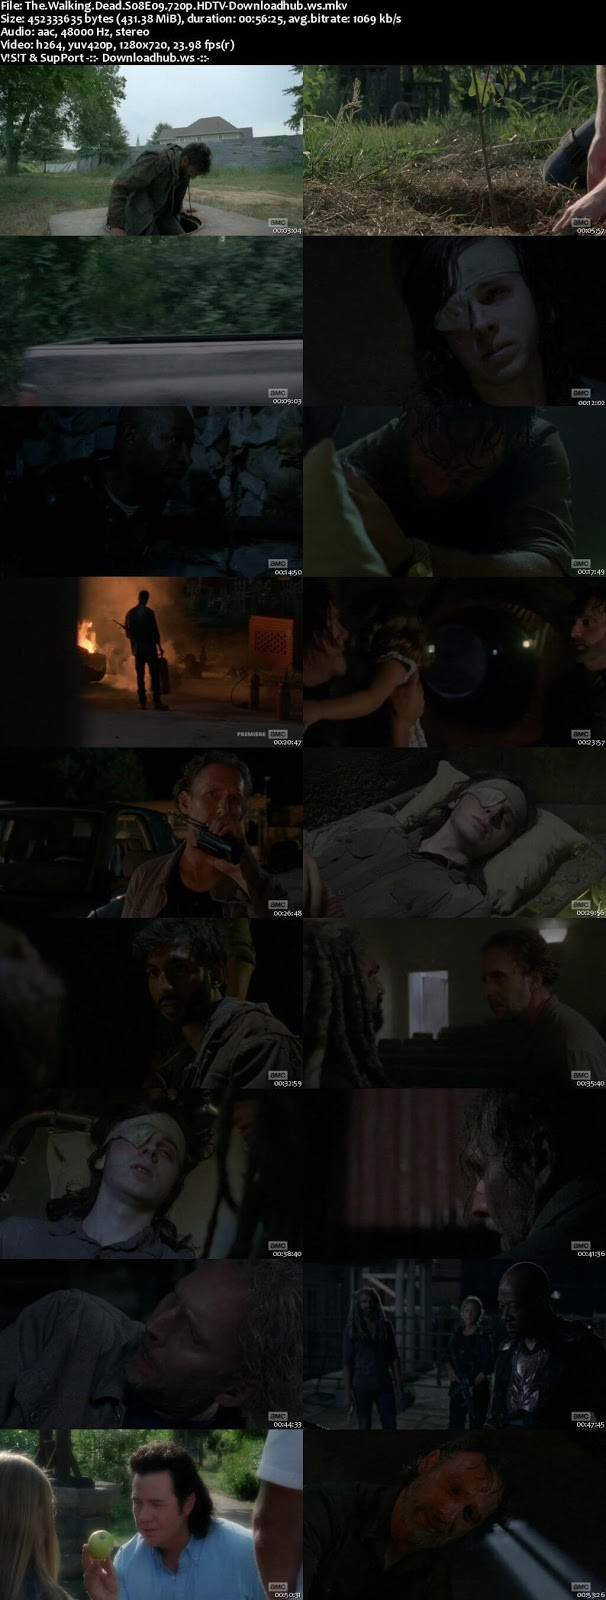 The Walking Dead S08E09 430MB HDTV 720p x264